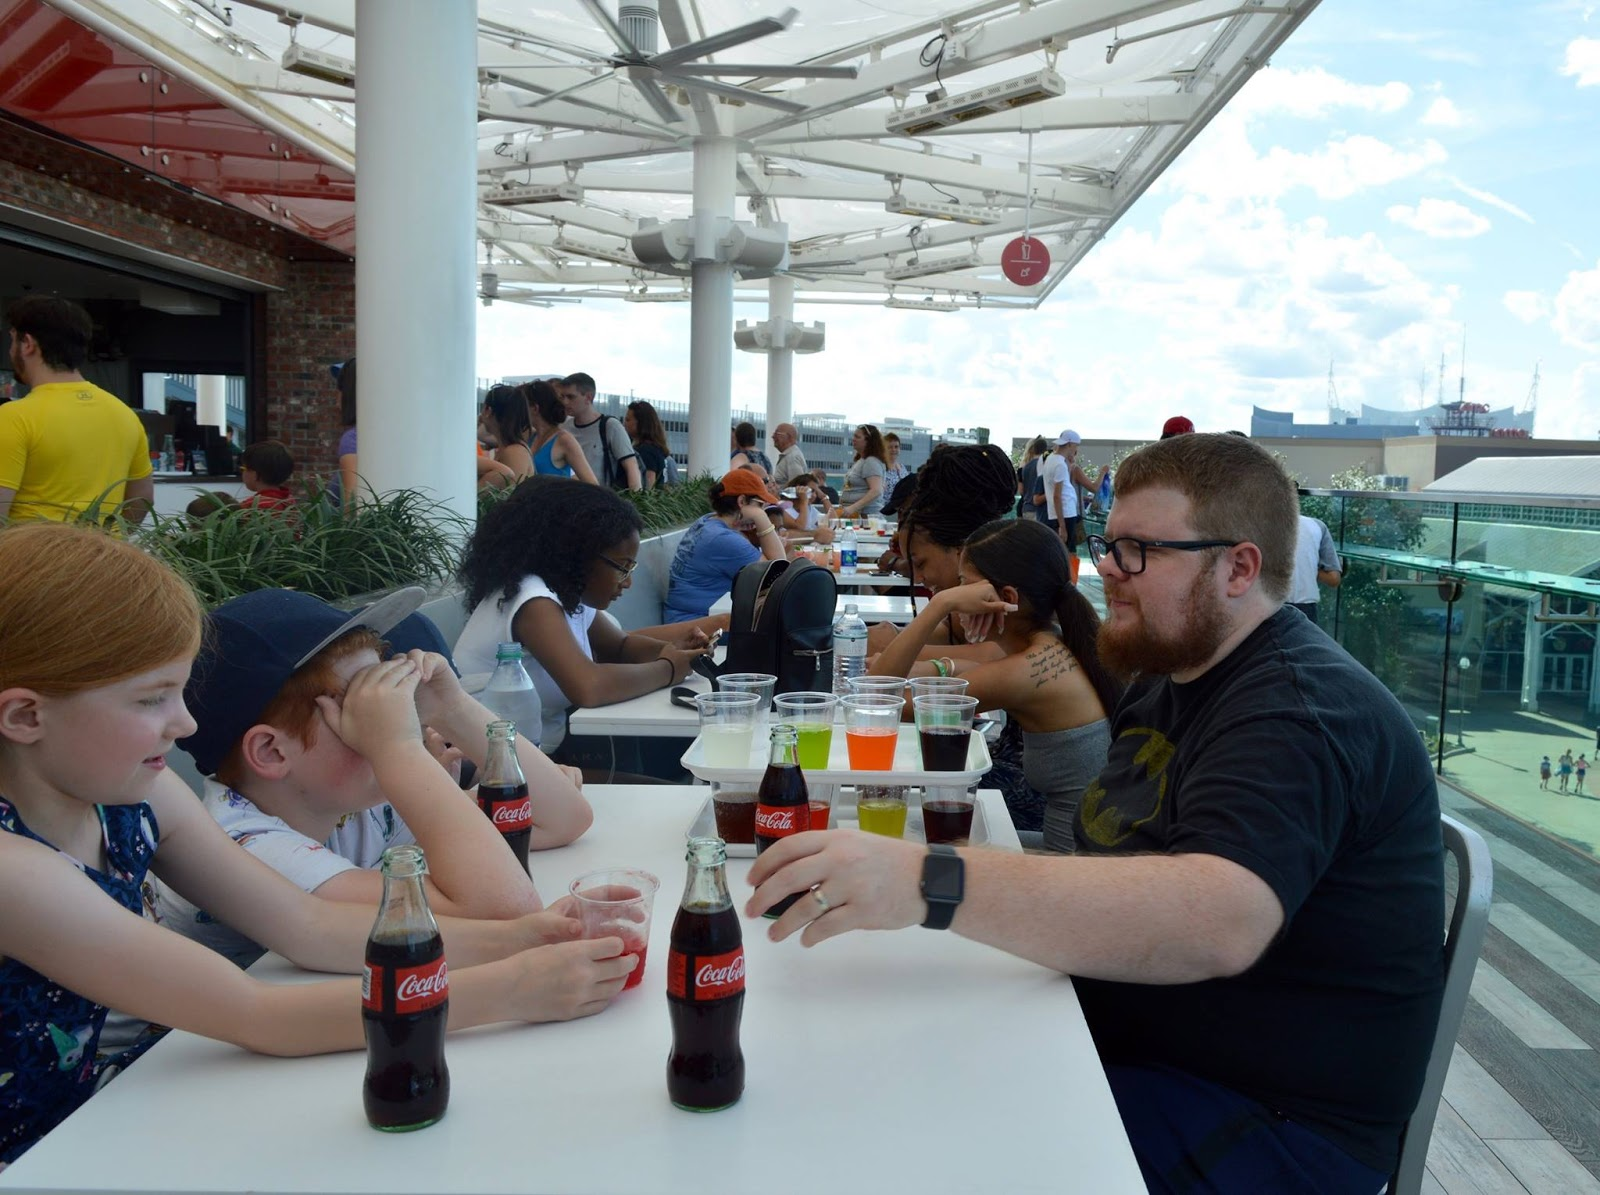 11 Things to do with Kids at Disney Springs Orlando, Florida  - coca cola rooftop bar